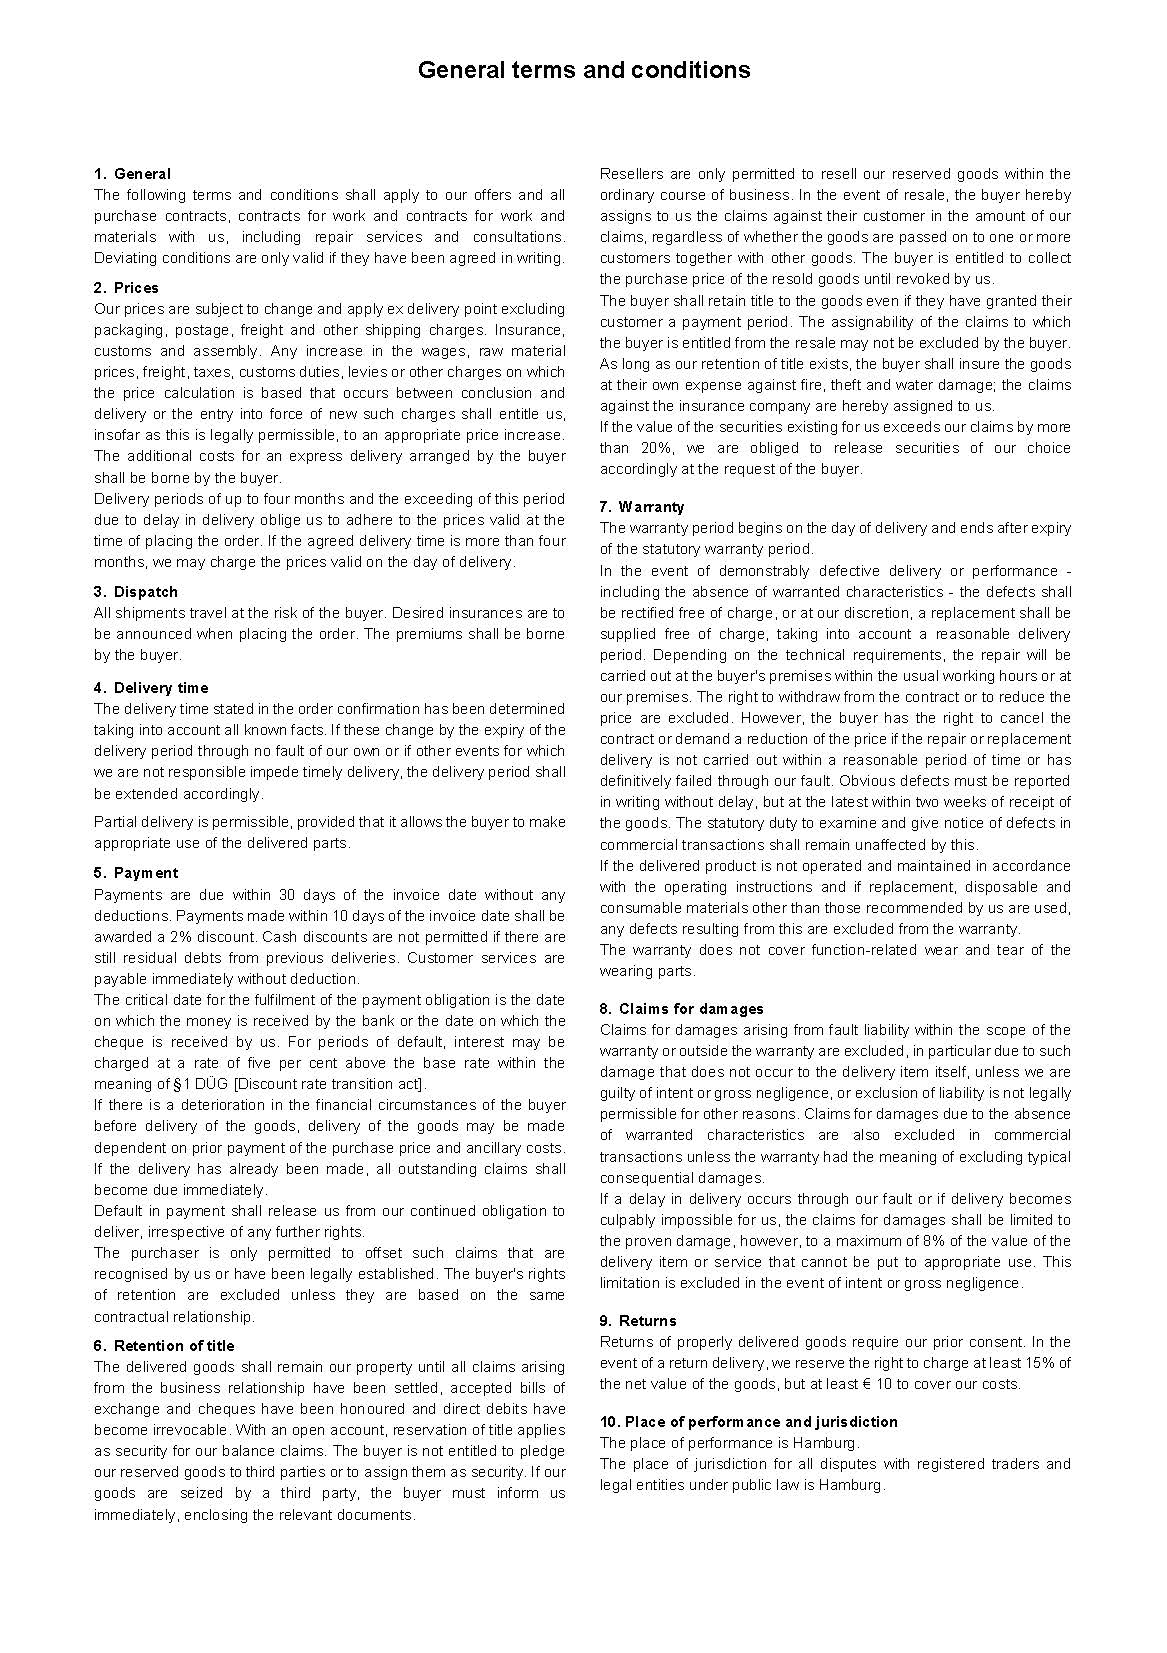 SCHLUMBOHM General terms and conditions